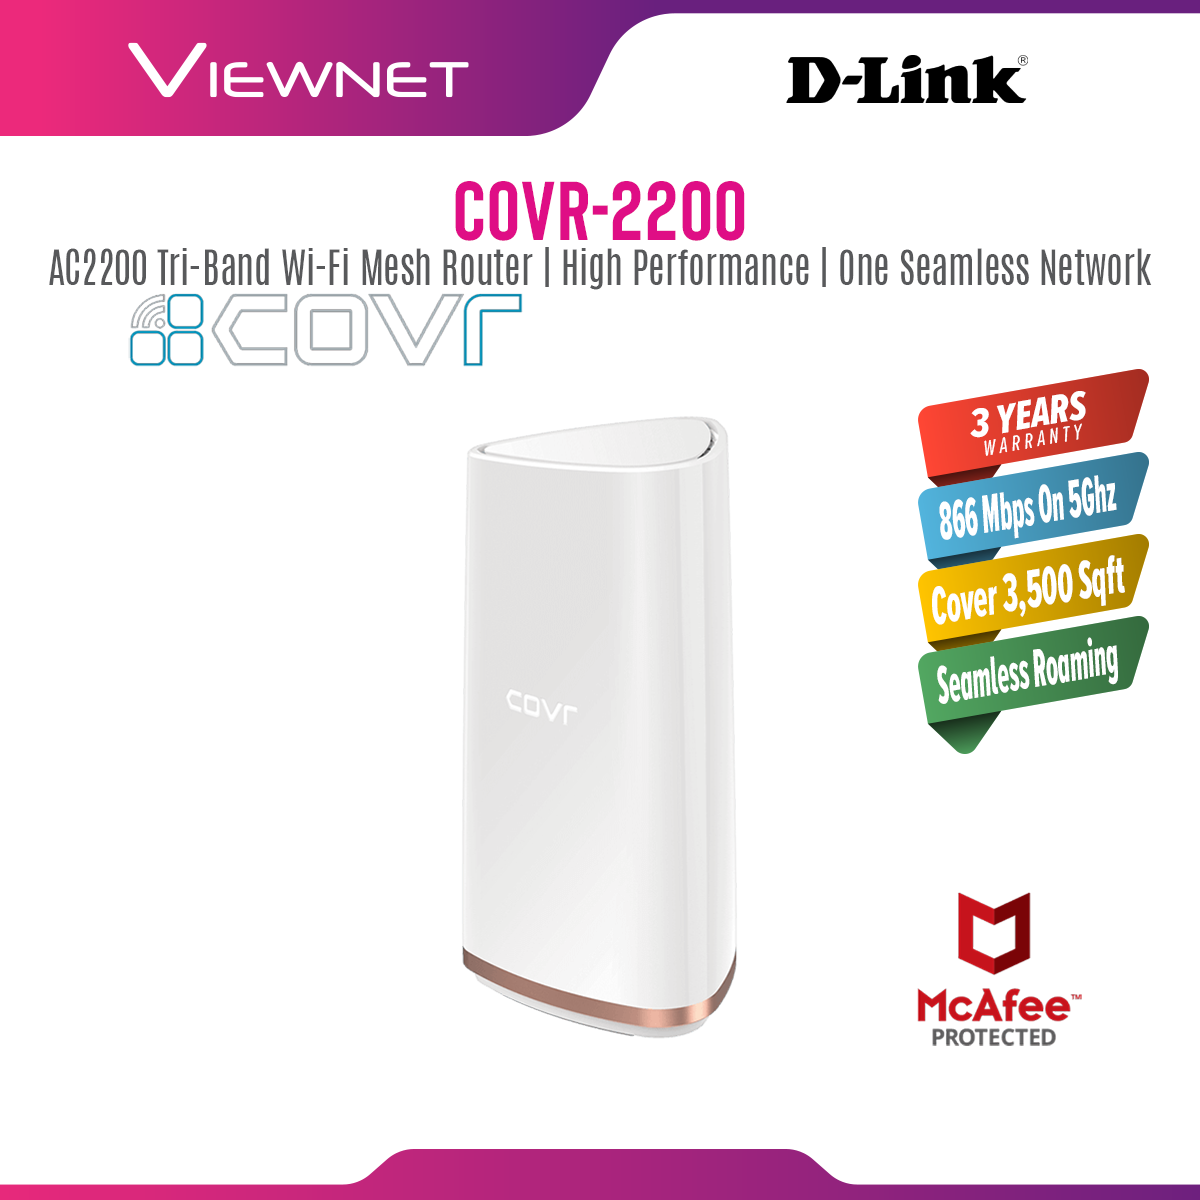 D-Link Tri Band Whole Home Mesh Wi-Fi System Routers, COVR-2200 AC2200, (866 Mbps + 866 Mbps + 400 Mbps)